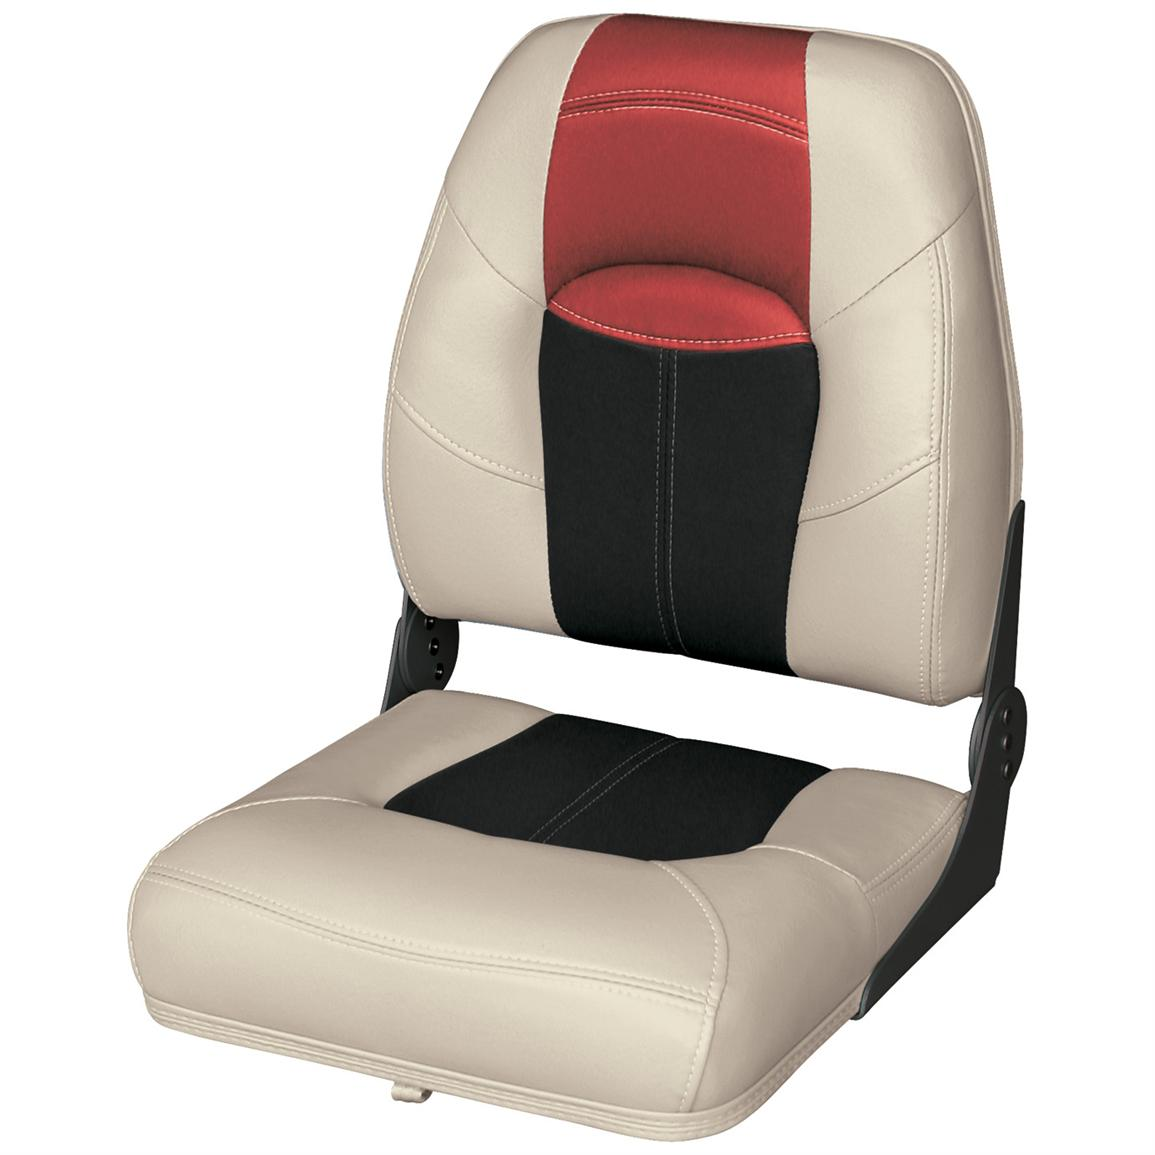 Wise® Blast-Off™ Series High Back Folding Boat Seat, Mushroom / Black / Red